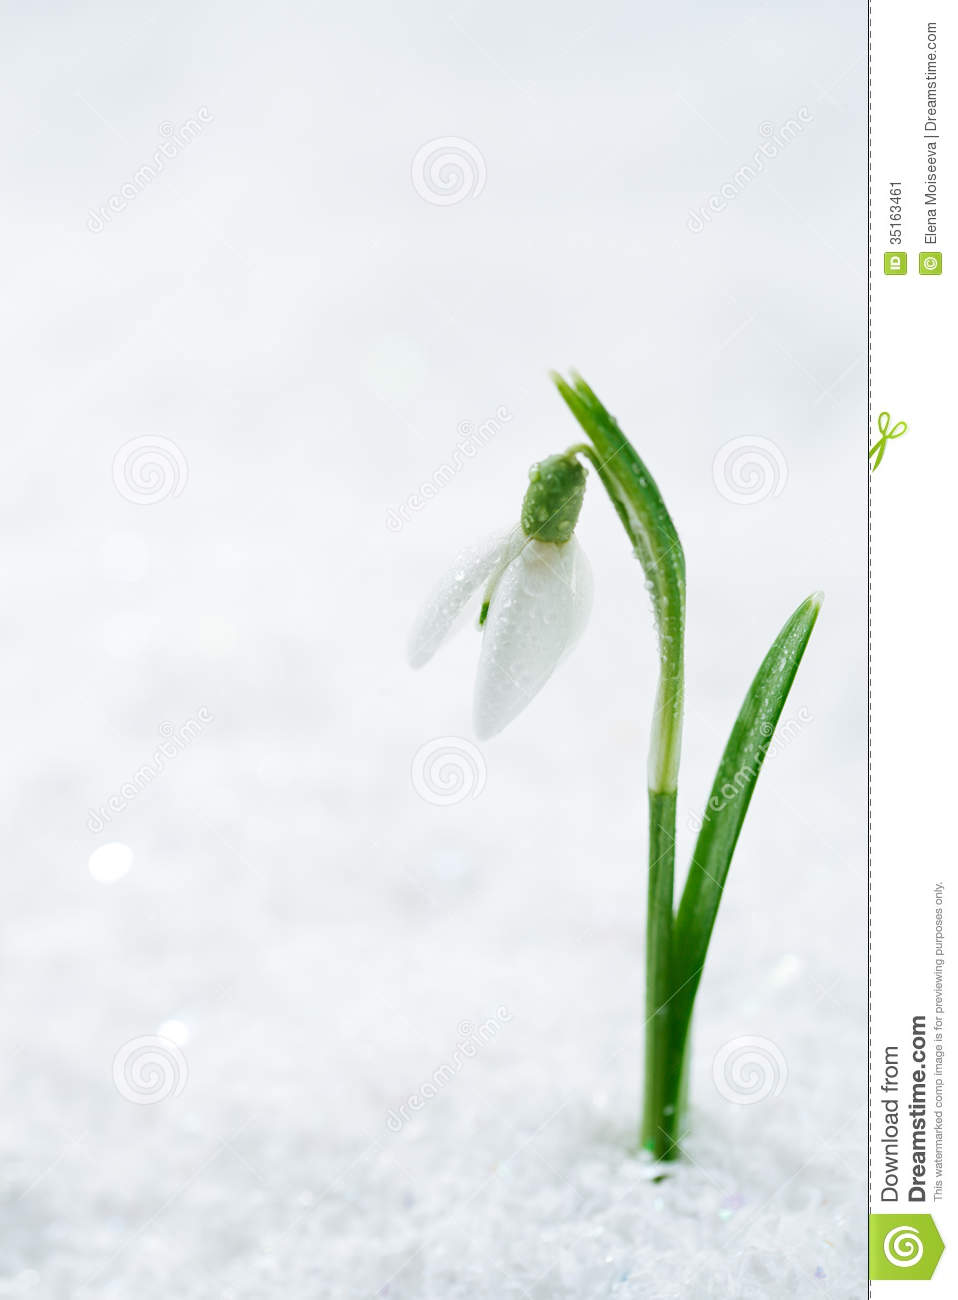 Fall Season Wallpaper Free Snowdrop Flower On White Studio Snow Soft Focus Perfect